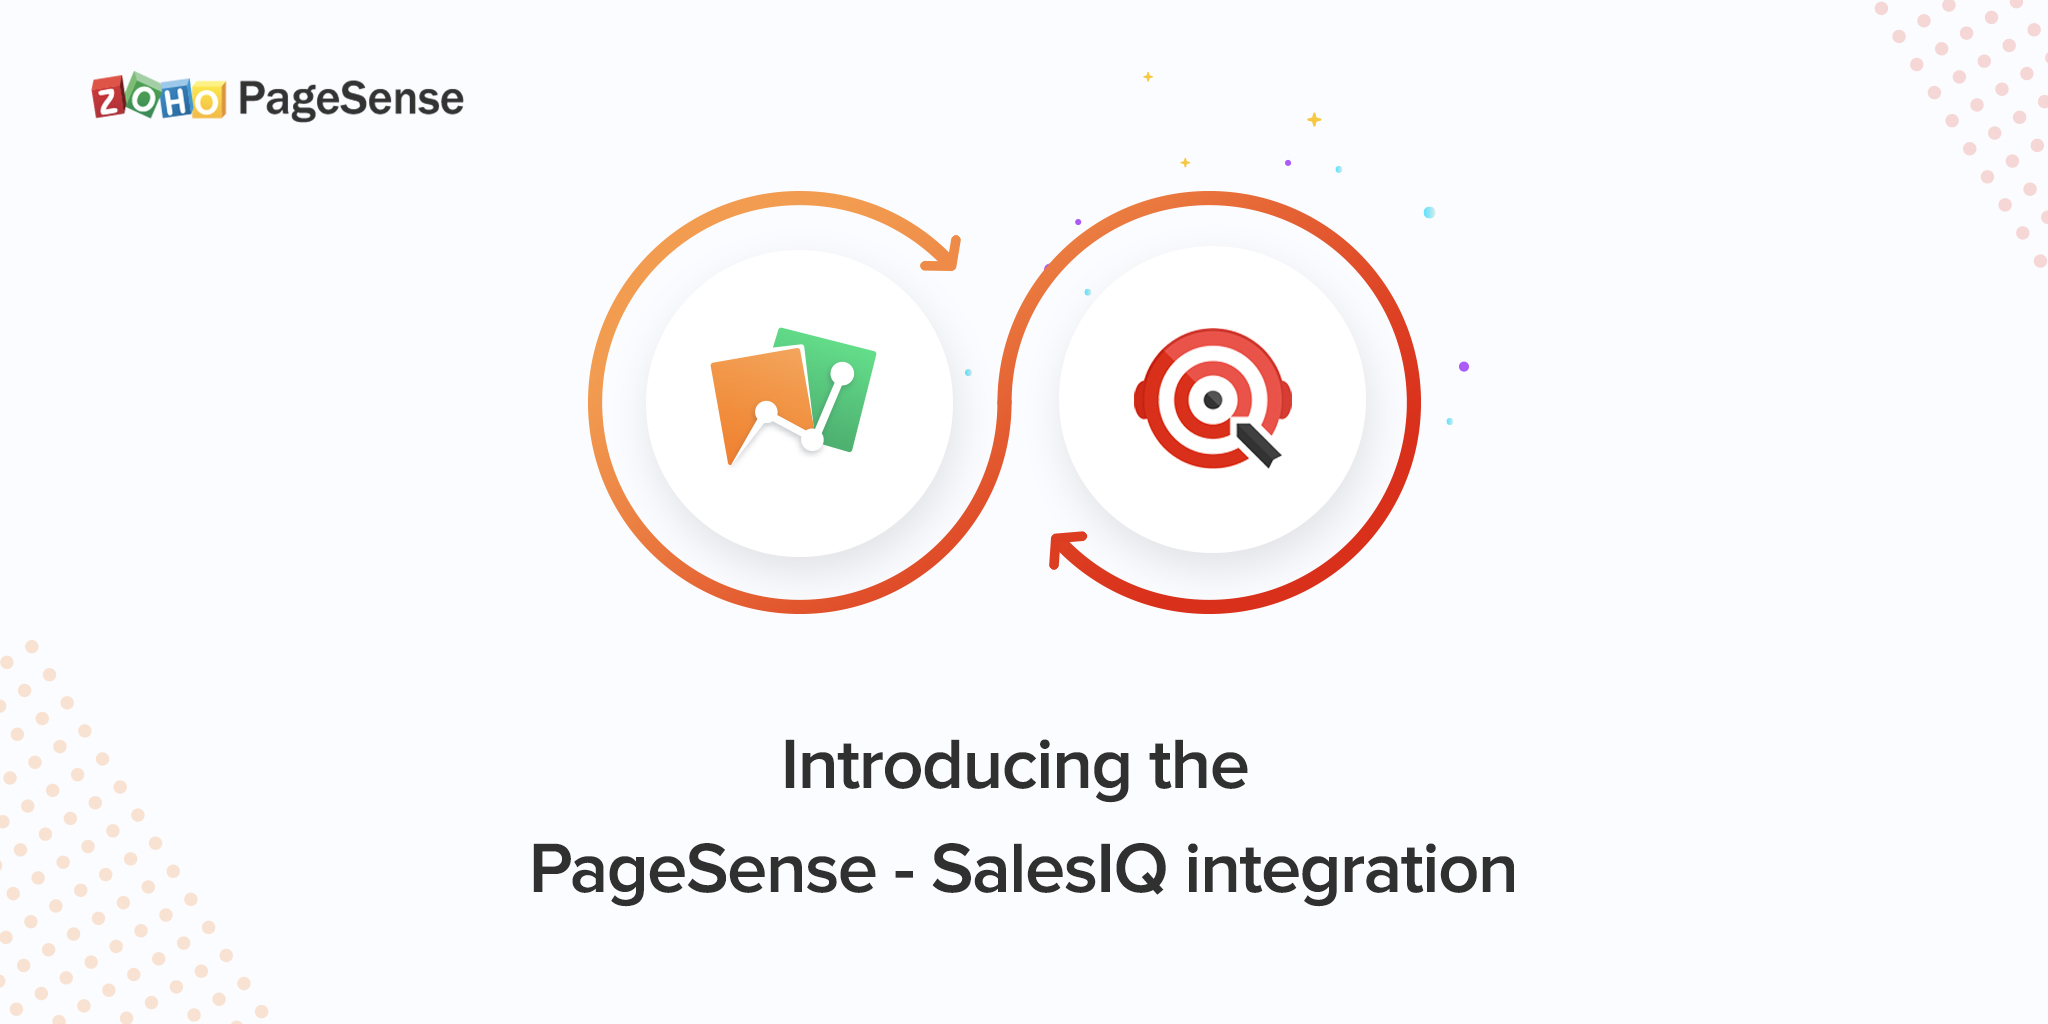 Launching PageSense and SalesIQ integration